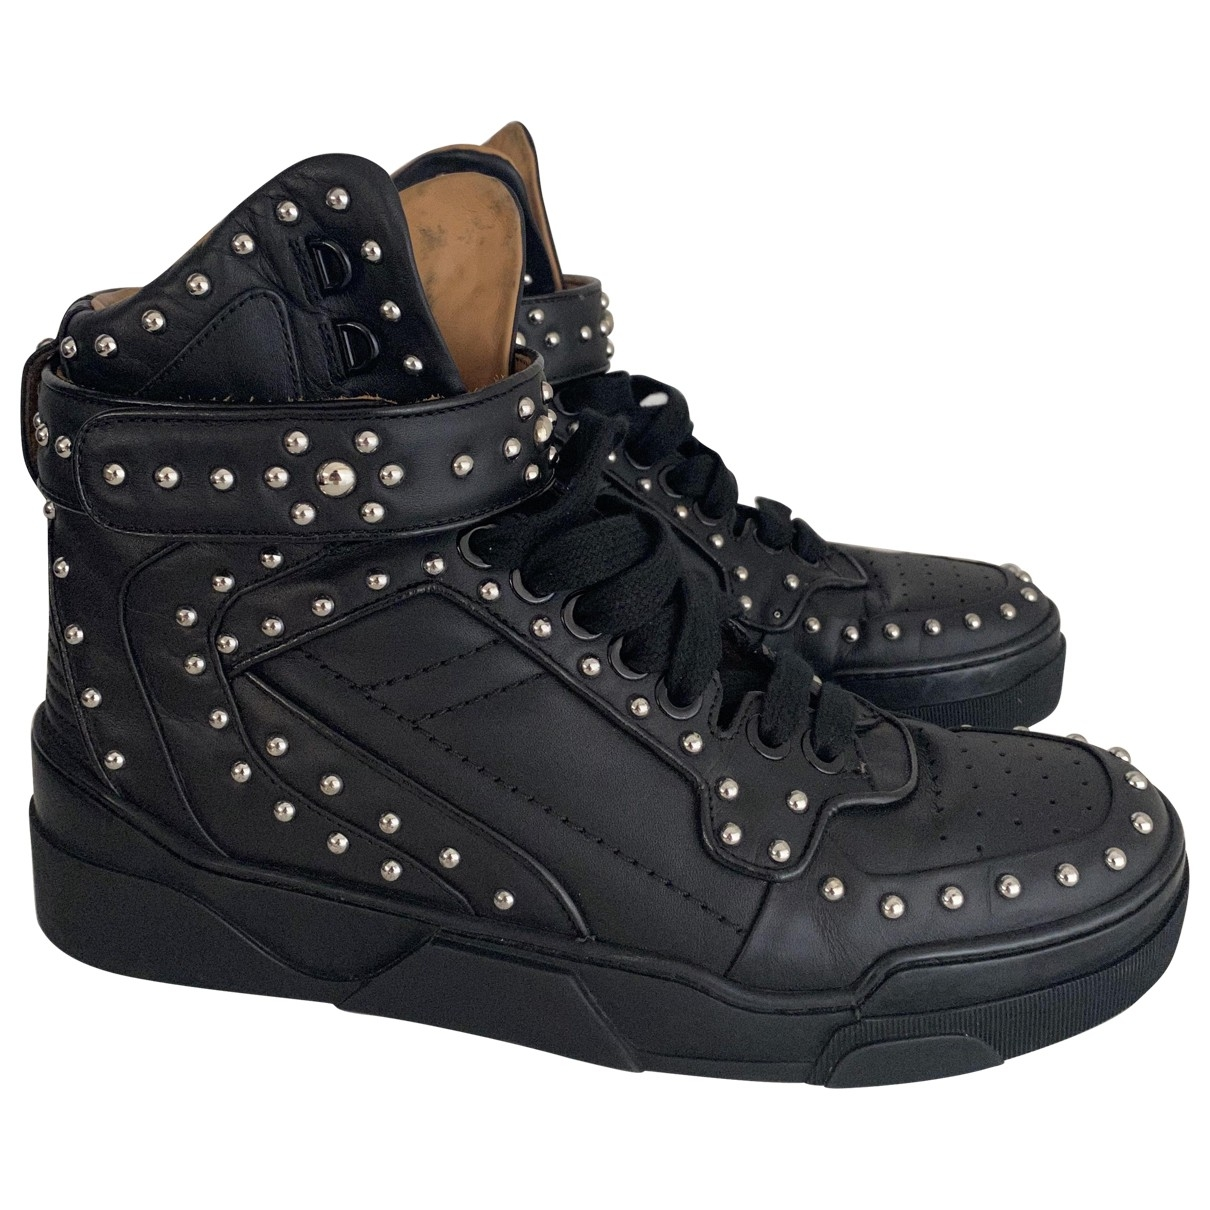 Givenchy Tyson Black Leather Trainers for Men 43 EU